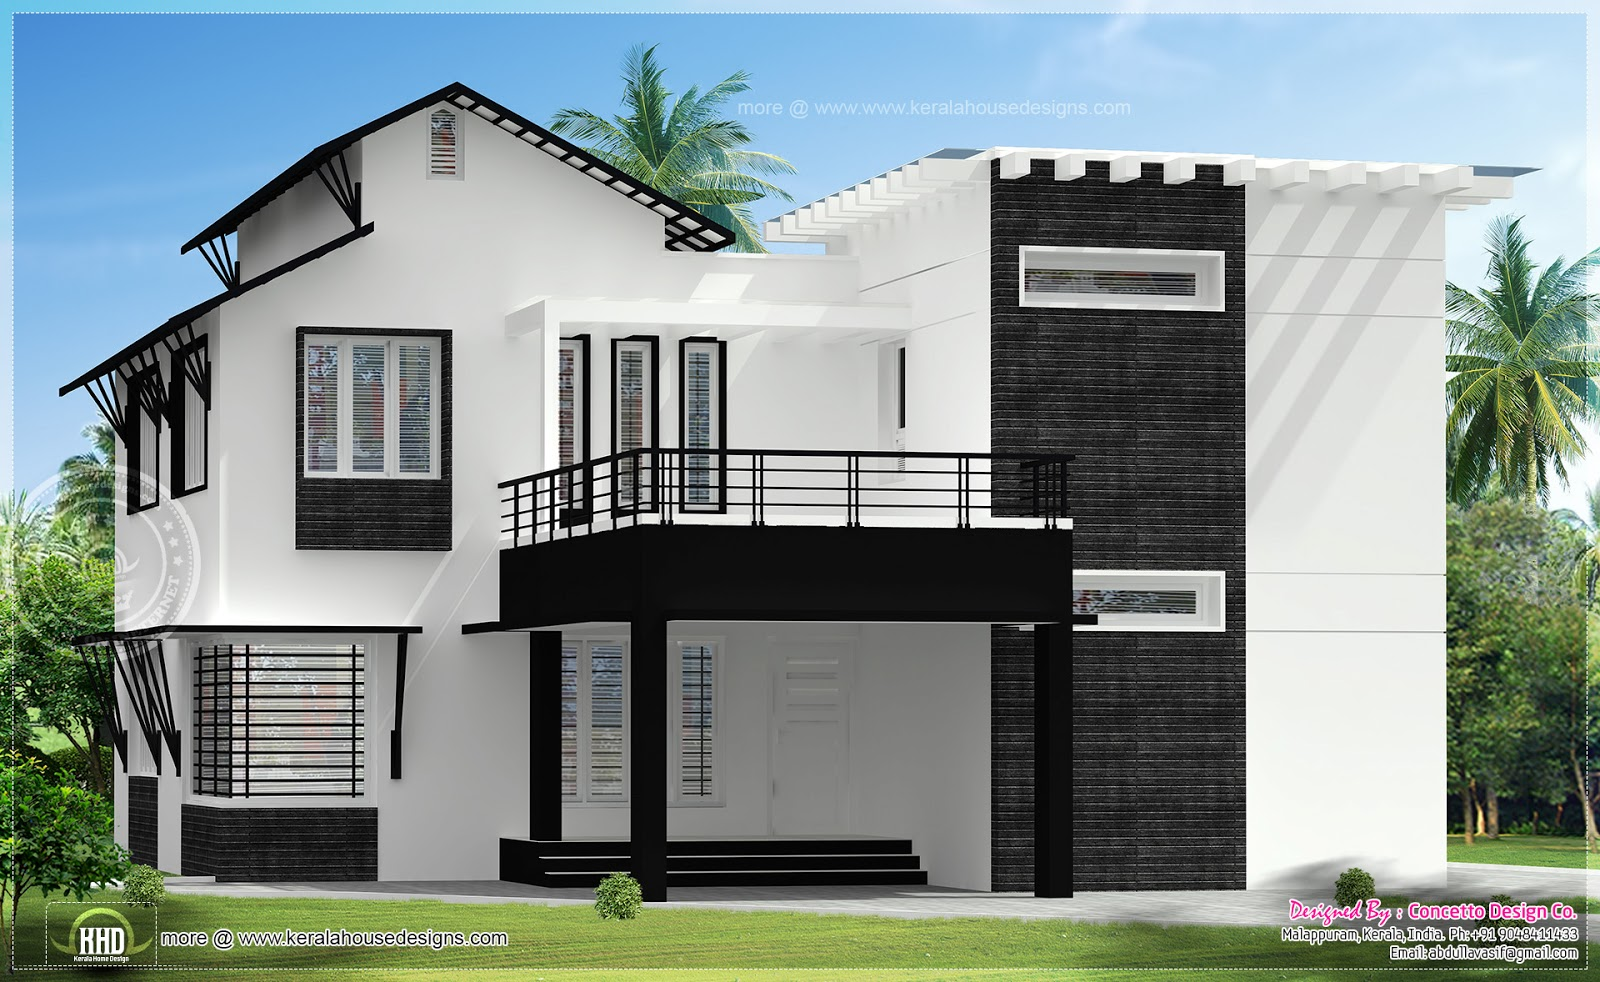 Ground Floor Elevation Quote : Different house exteriors by concetto design kerala